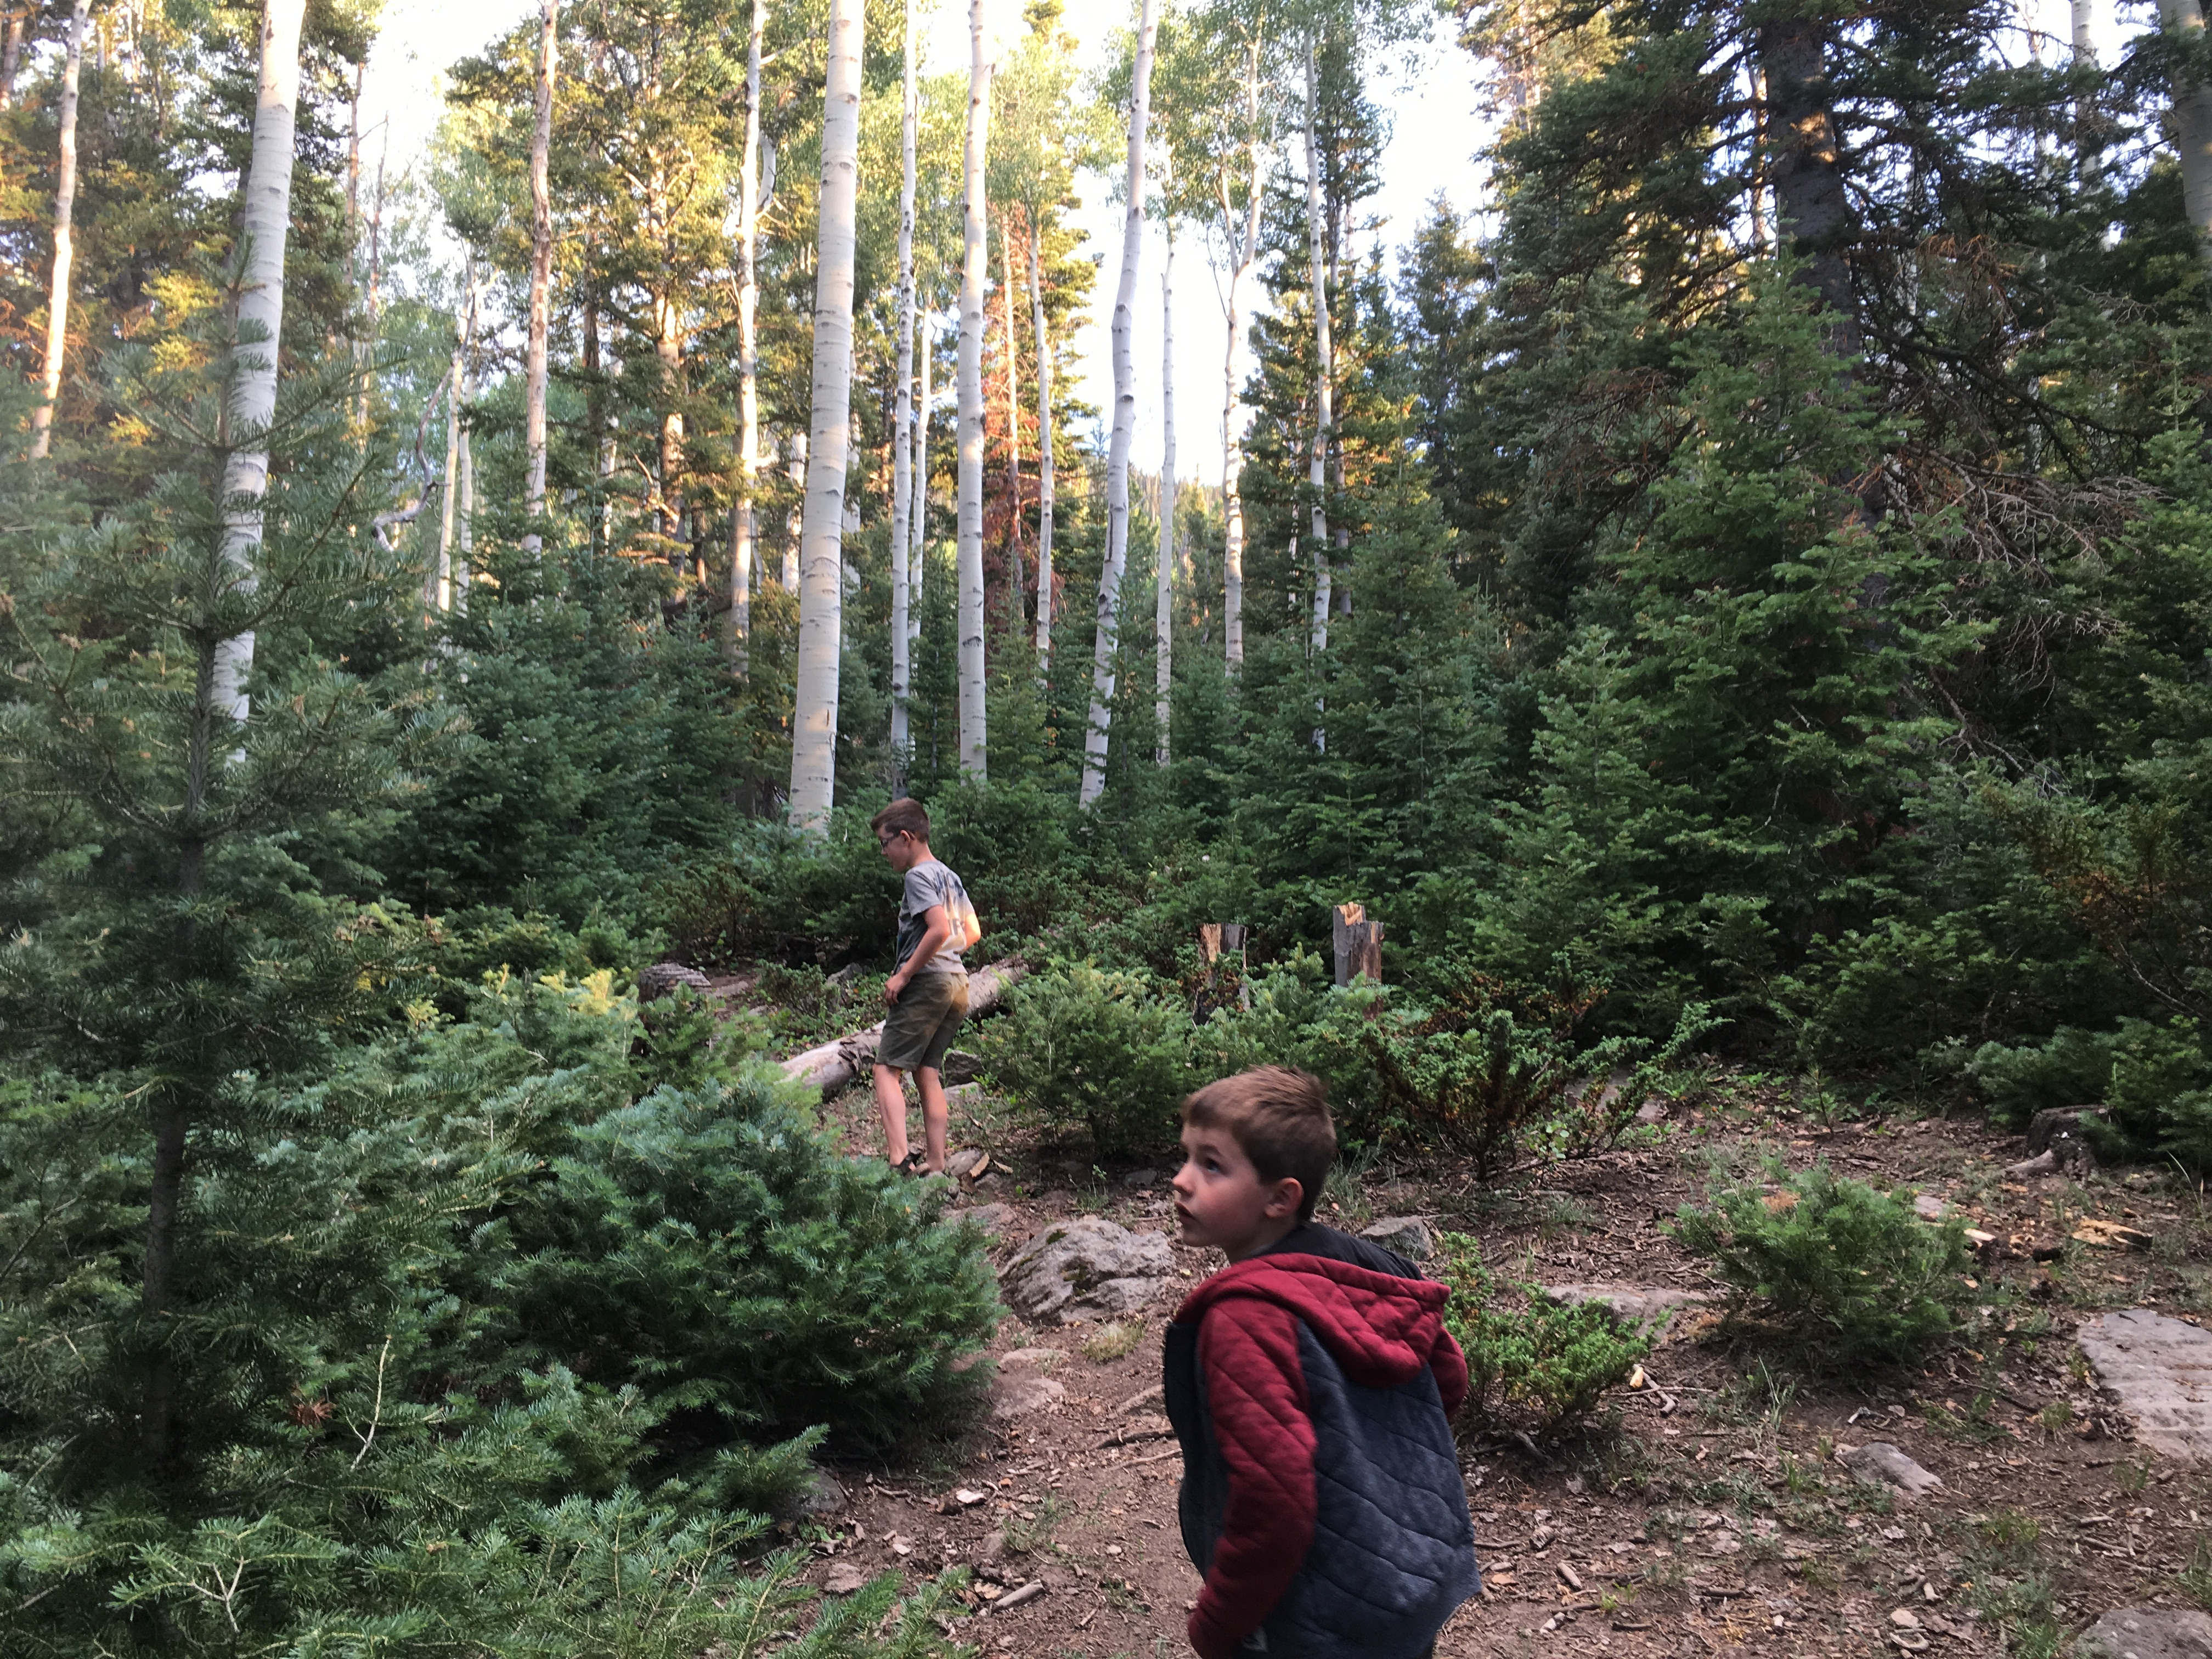 Explore high altitude fun at tushar lakeside campground st george hunter reina top and conor reina explore the forest surrounding the tushar lakeside campground beaver utah july 15 2017 photo by hollie reina publicscrutiny Image collections